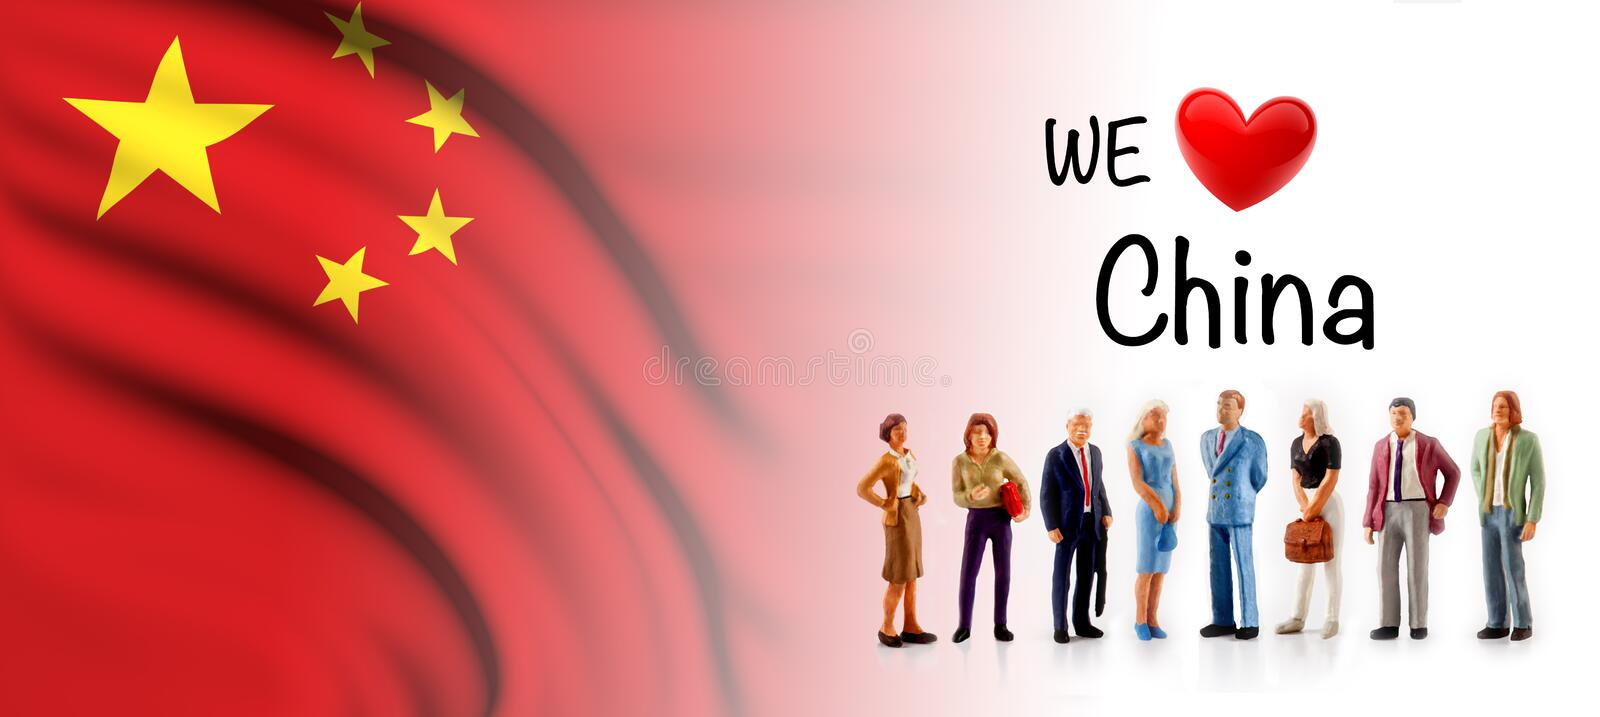 We love China, A group of people pose next to the Chinese flag.  vector illustration